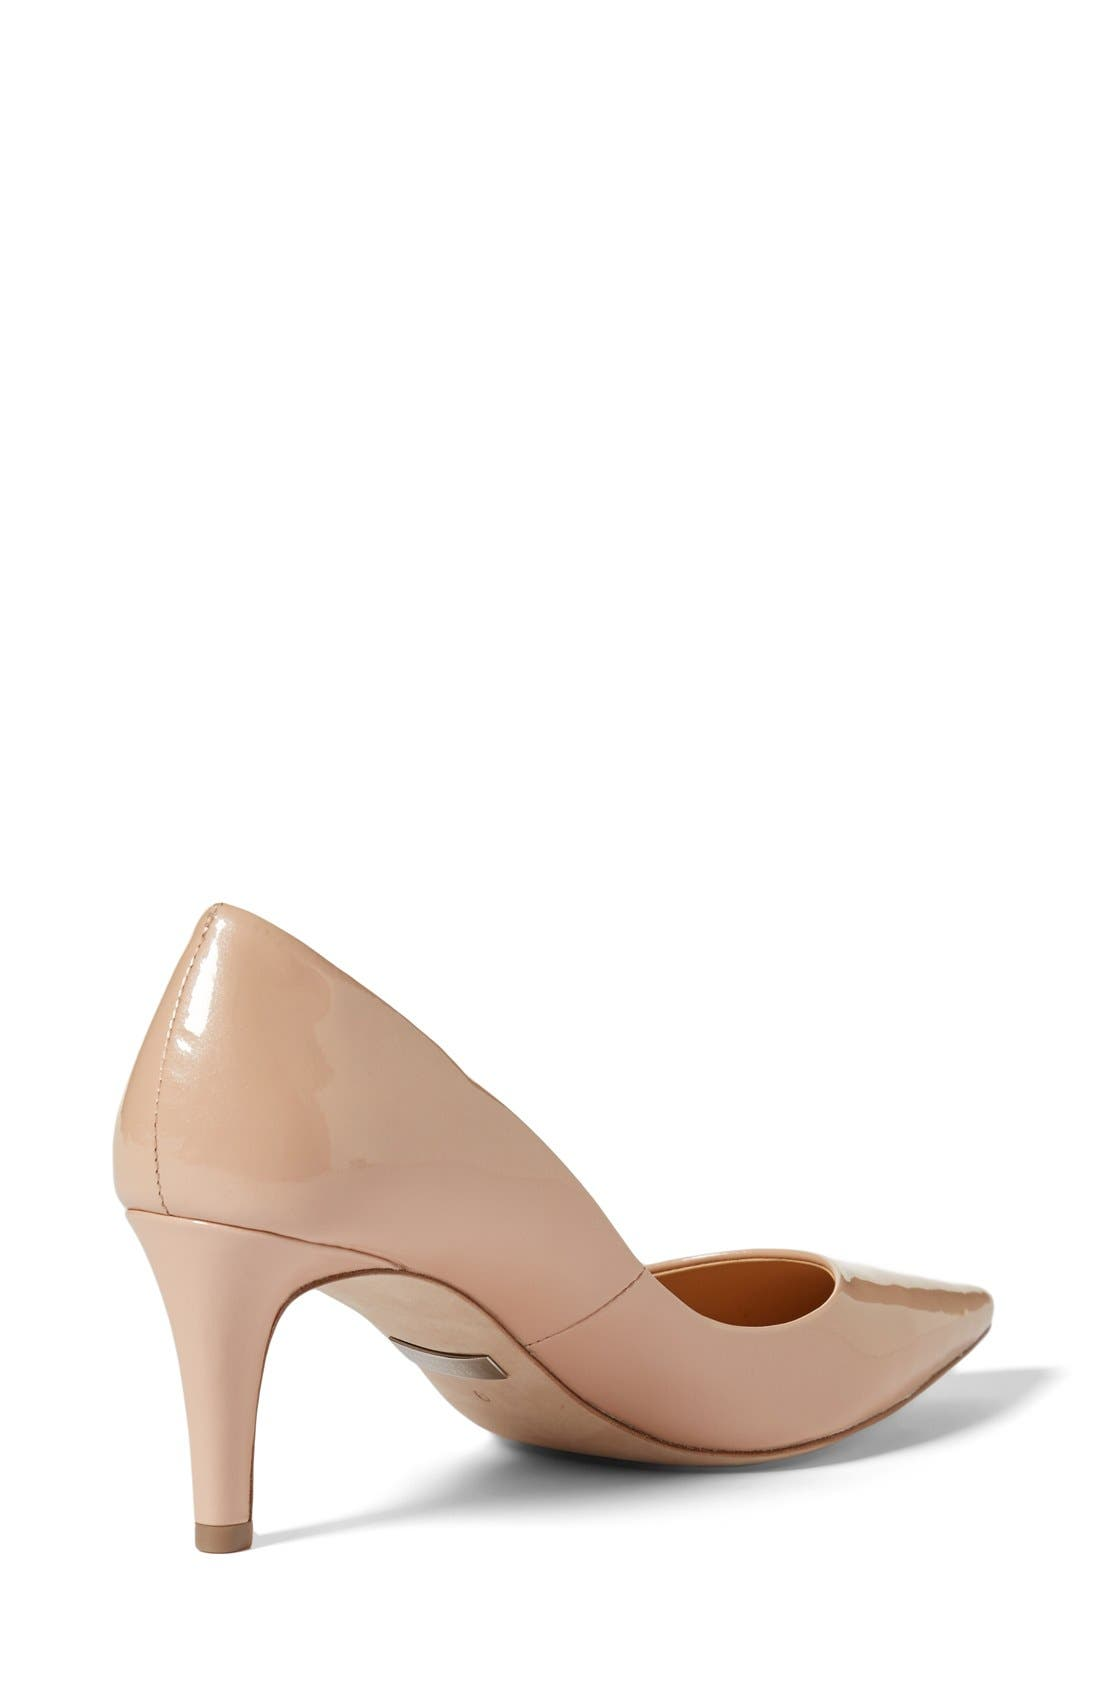 Alternate Image 2  - Badgley Mischka 'Poise II' Pointy Toe Pump (Women)